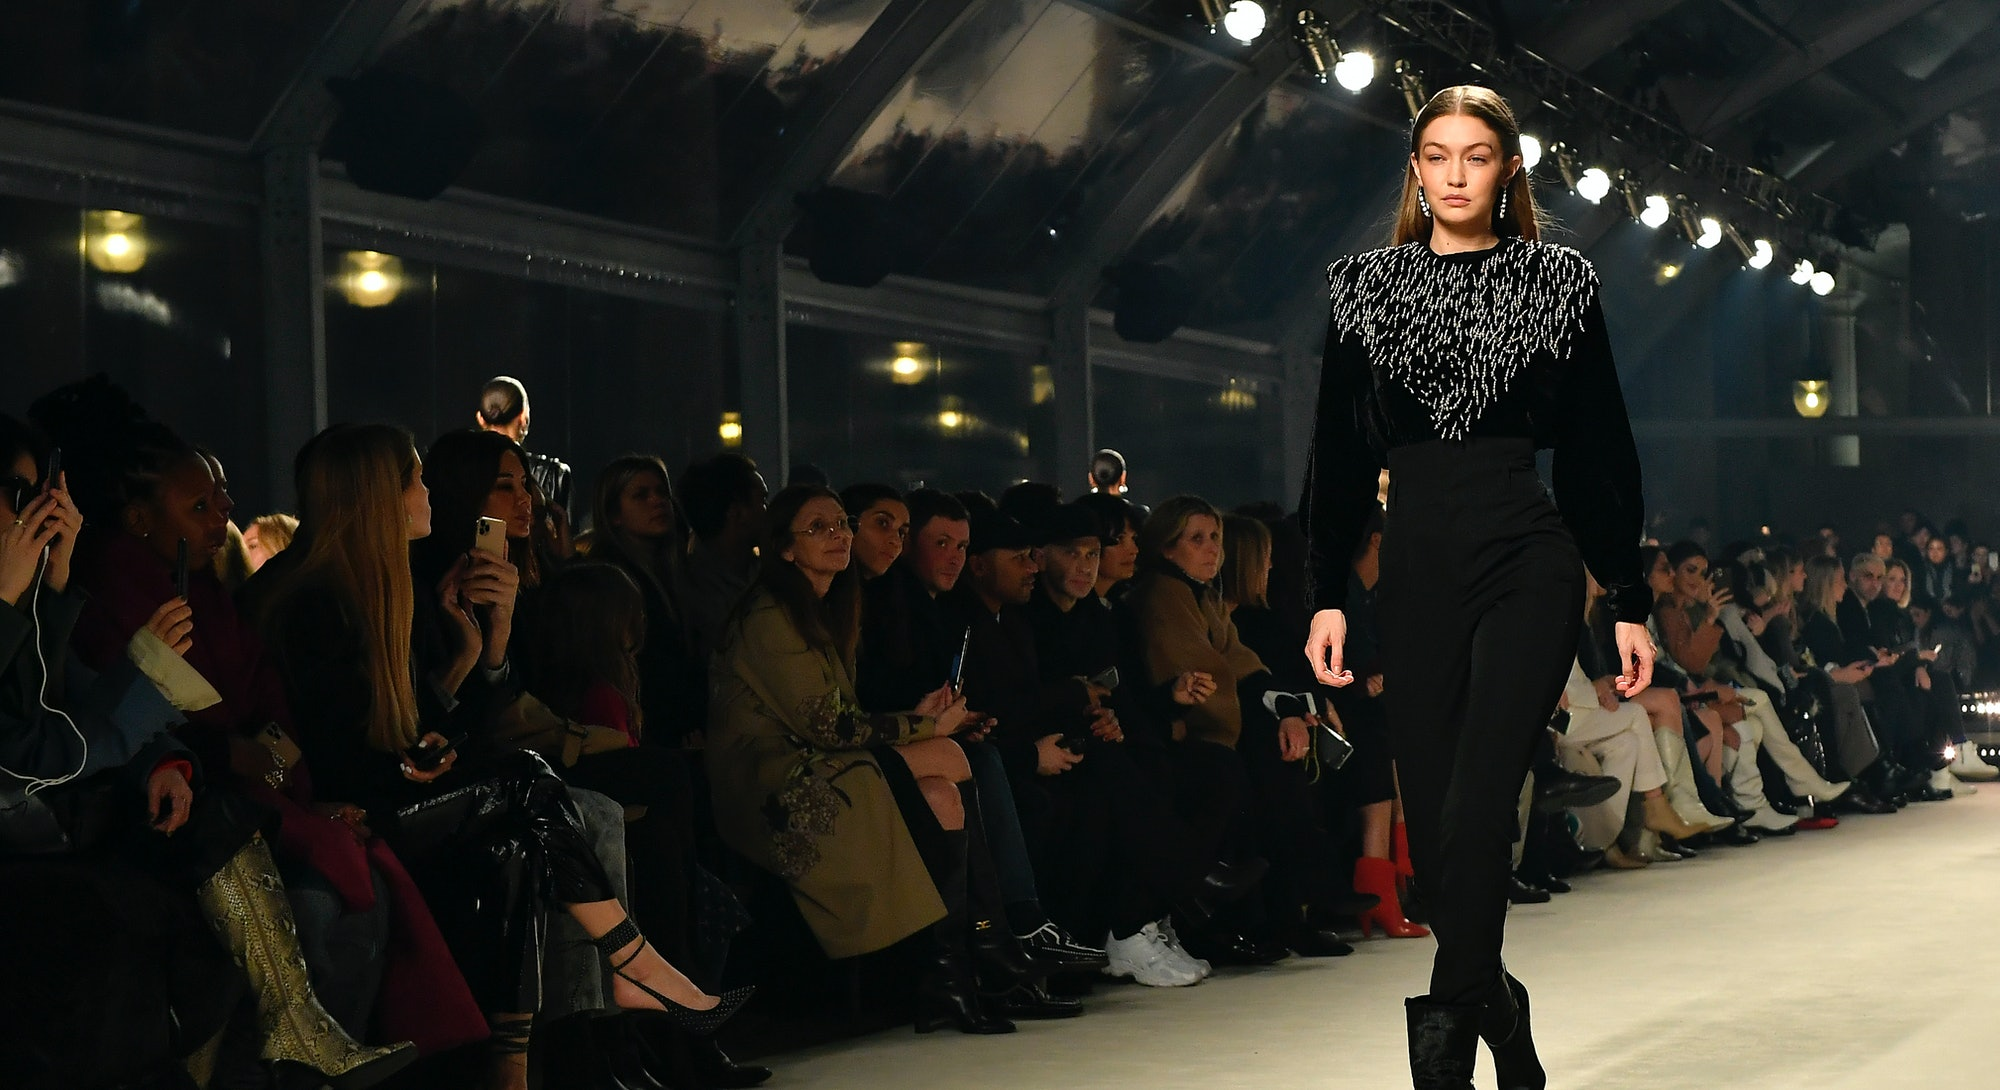 PARIS, FRANCE - FEBRUARY 27: (EDITORIAL USE ONLY) Gigi Hadid walks the runway during the Isabel Marant show as part of the Paris Fashion Week Womenswear Fall/Winter 2020/2021 on February 27, 2020 in Paris, France. (Photo by Aurelien Meunier/Getty Images)